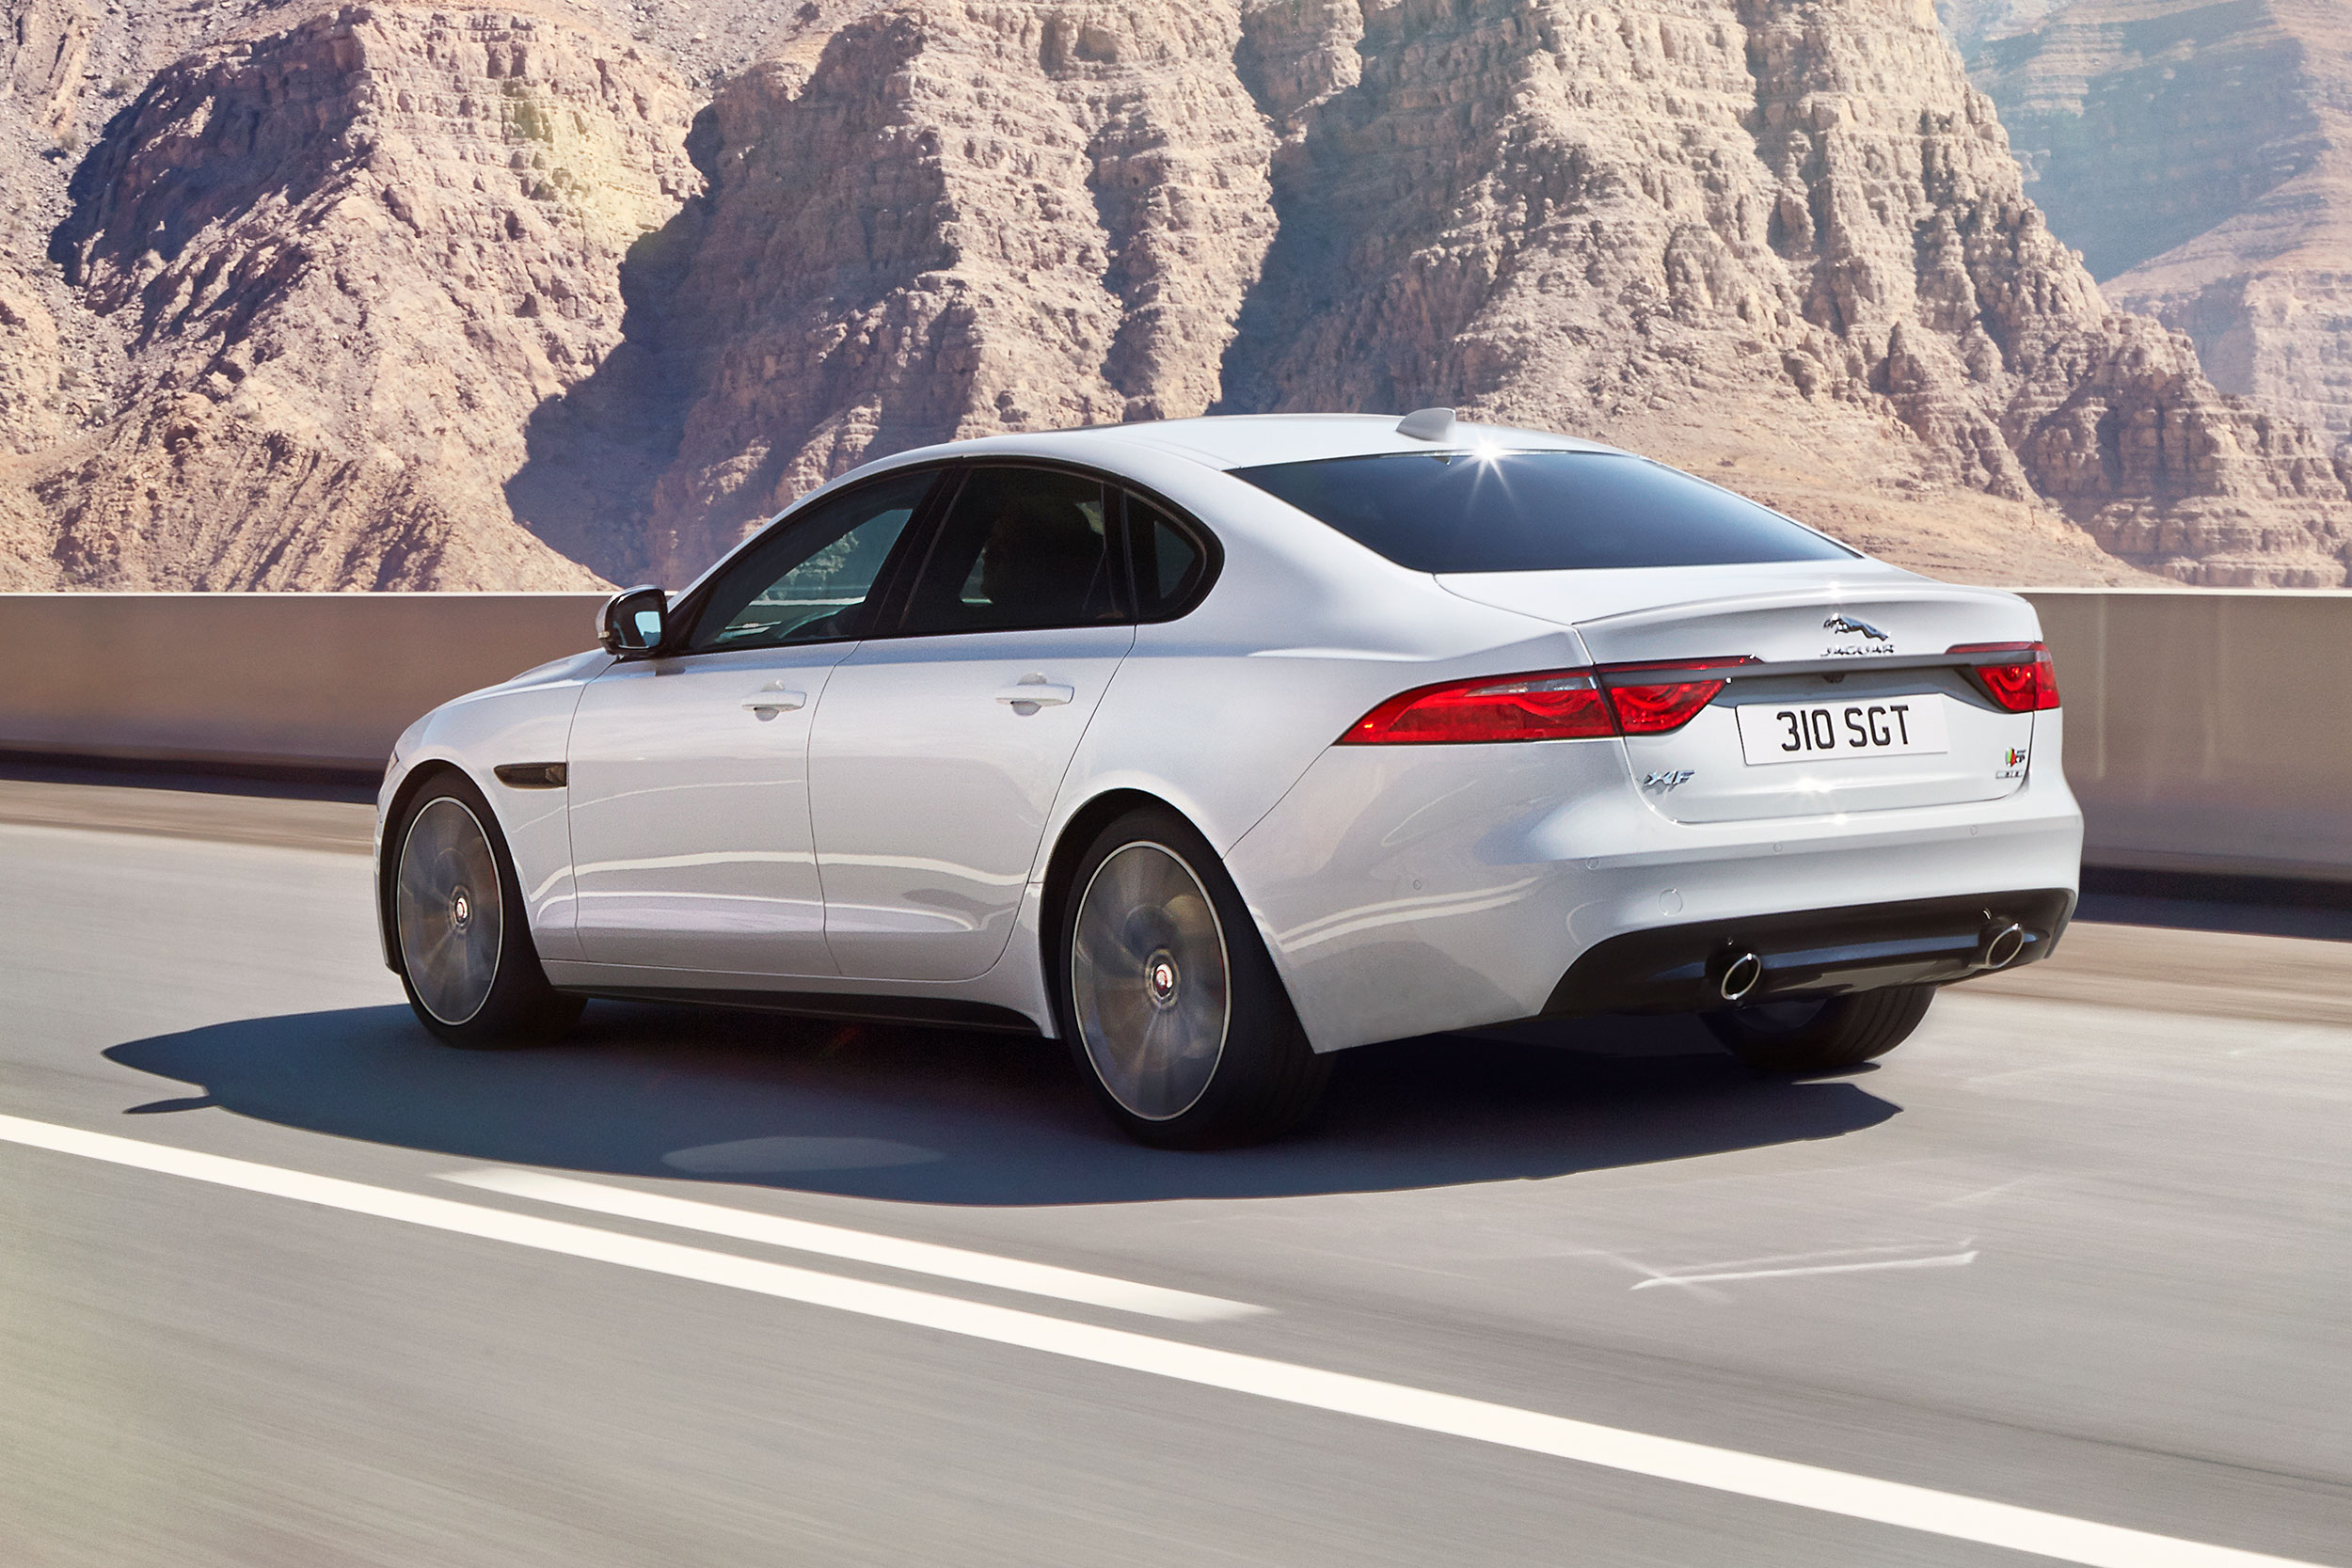 review r the car bmw super package coupe s coup highres awd v f competition and clinic jaguar of coupes battle type